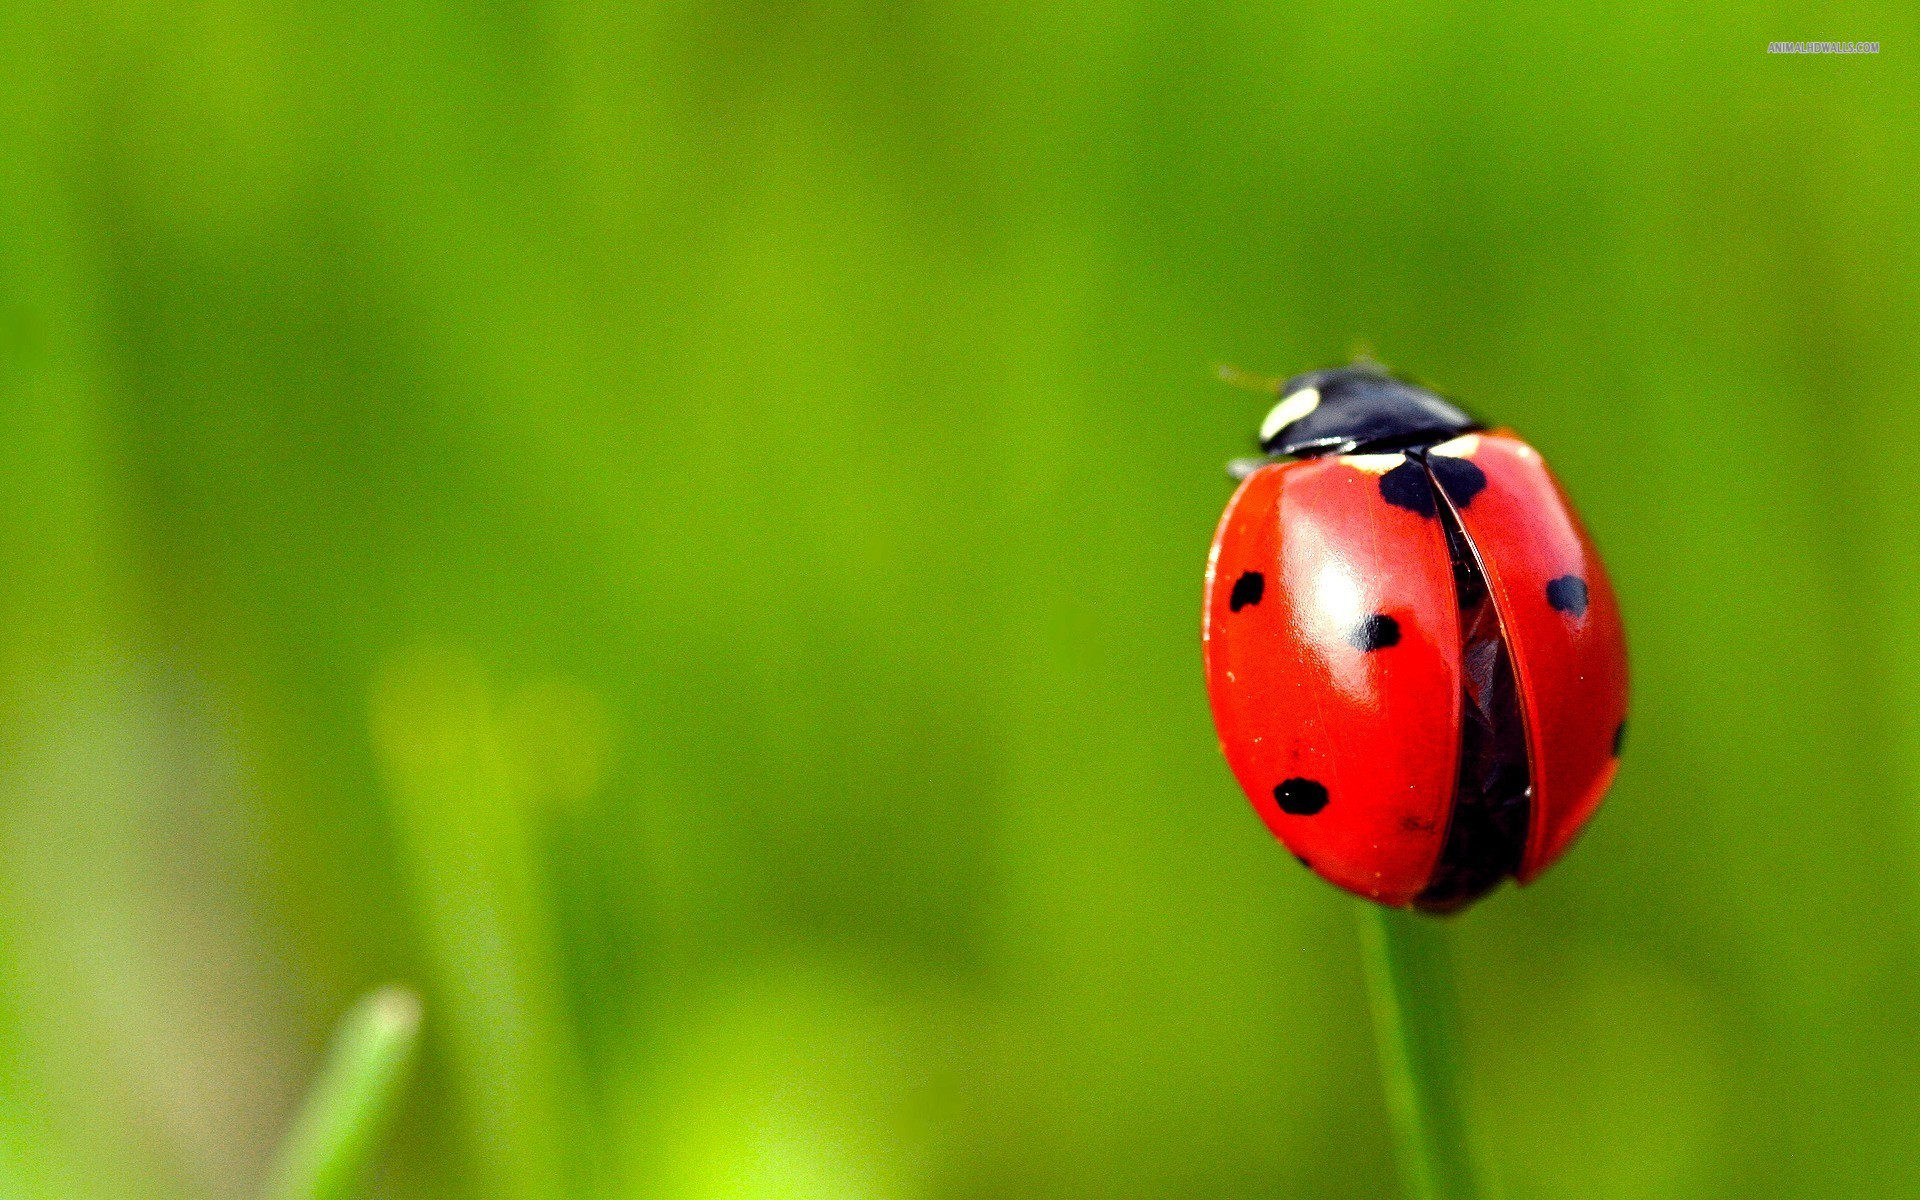 Ladybug Picture Wallpaper HD Desktop